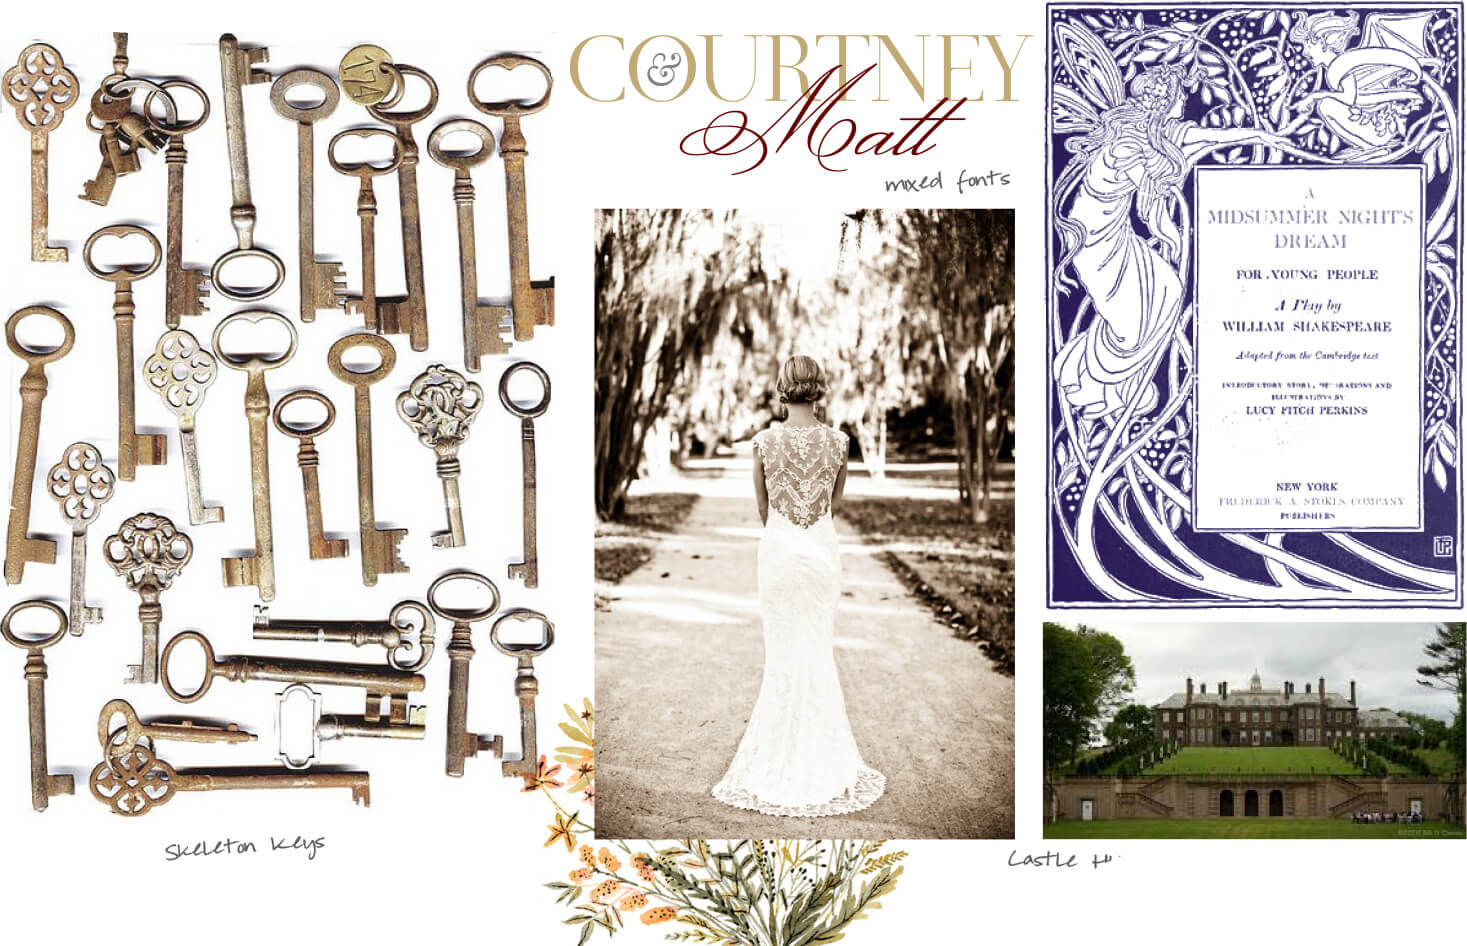 Skeleton keys, lace wedding gowns and castles